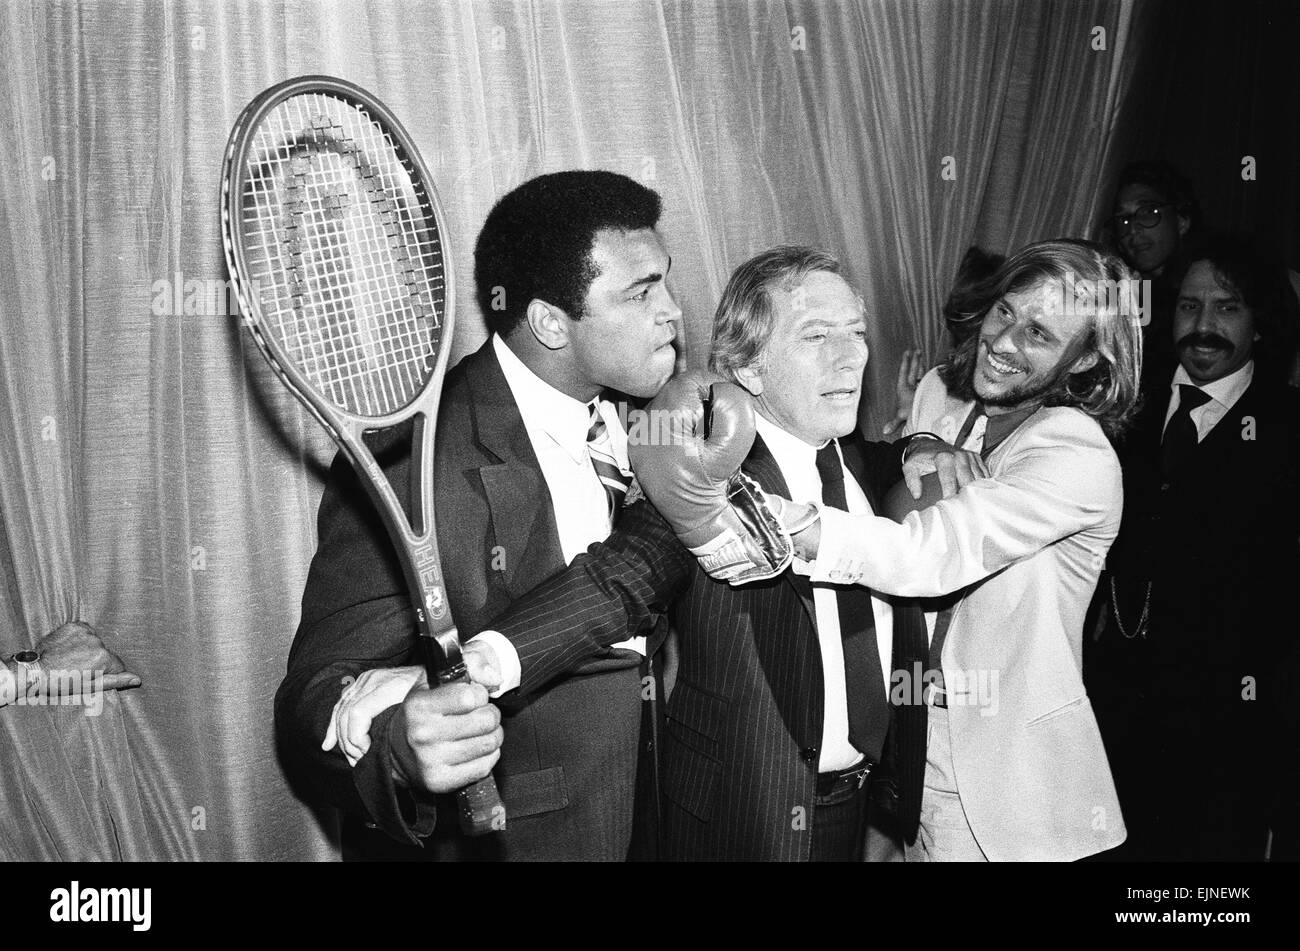 Singer Andy Williams breaks steps inbetween Heavyweight Boxing champion who is holding a tennis racket over Tennis - Stock Image